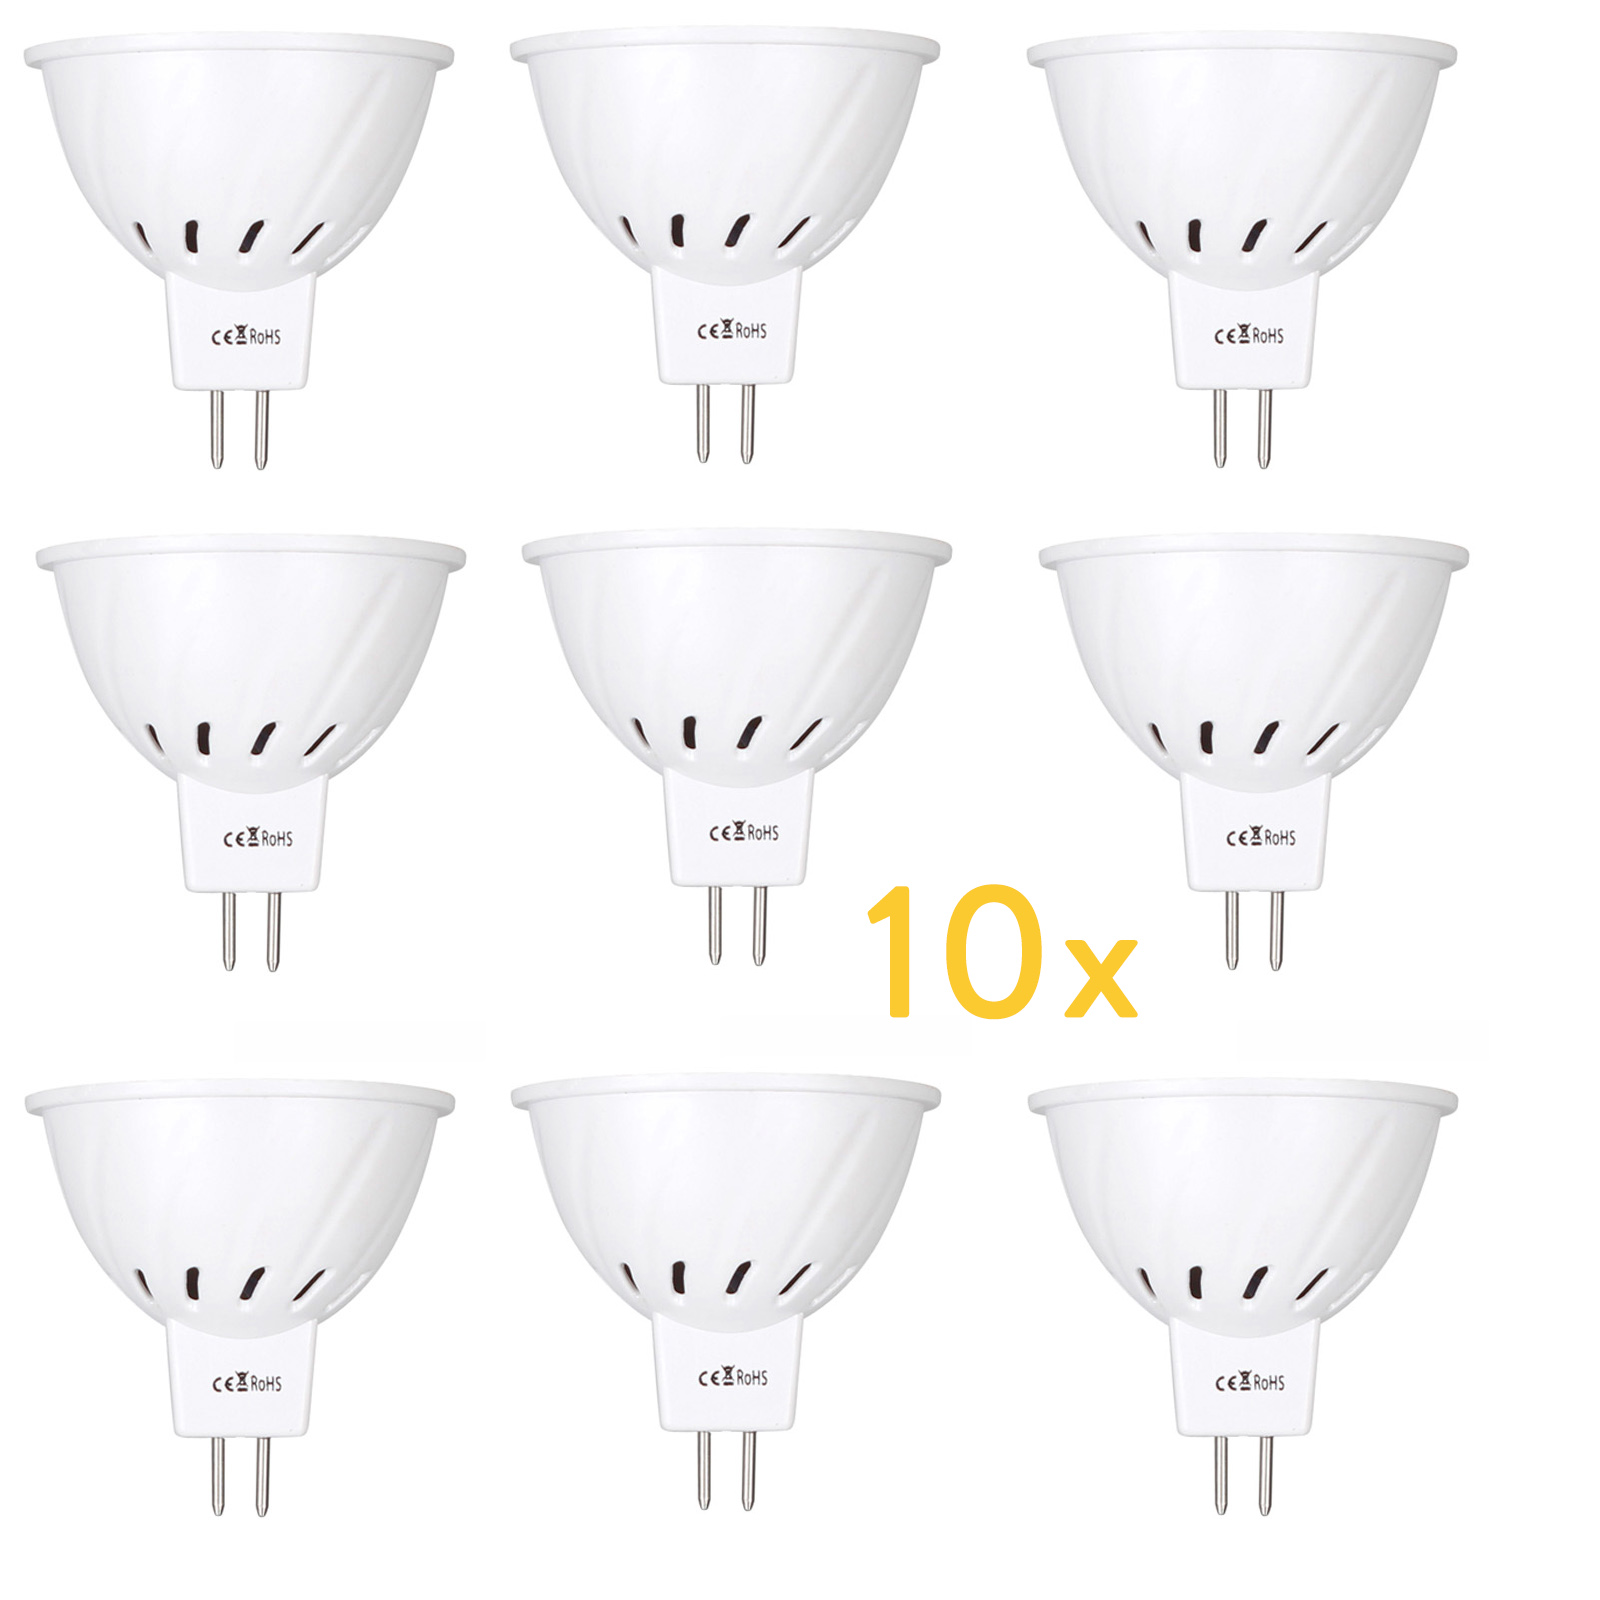 20//10x 4W 6W LED Spotlight Bulbs GU10 Light Downlights Replace Cool//Warm White